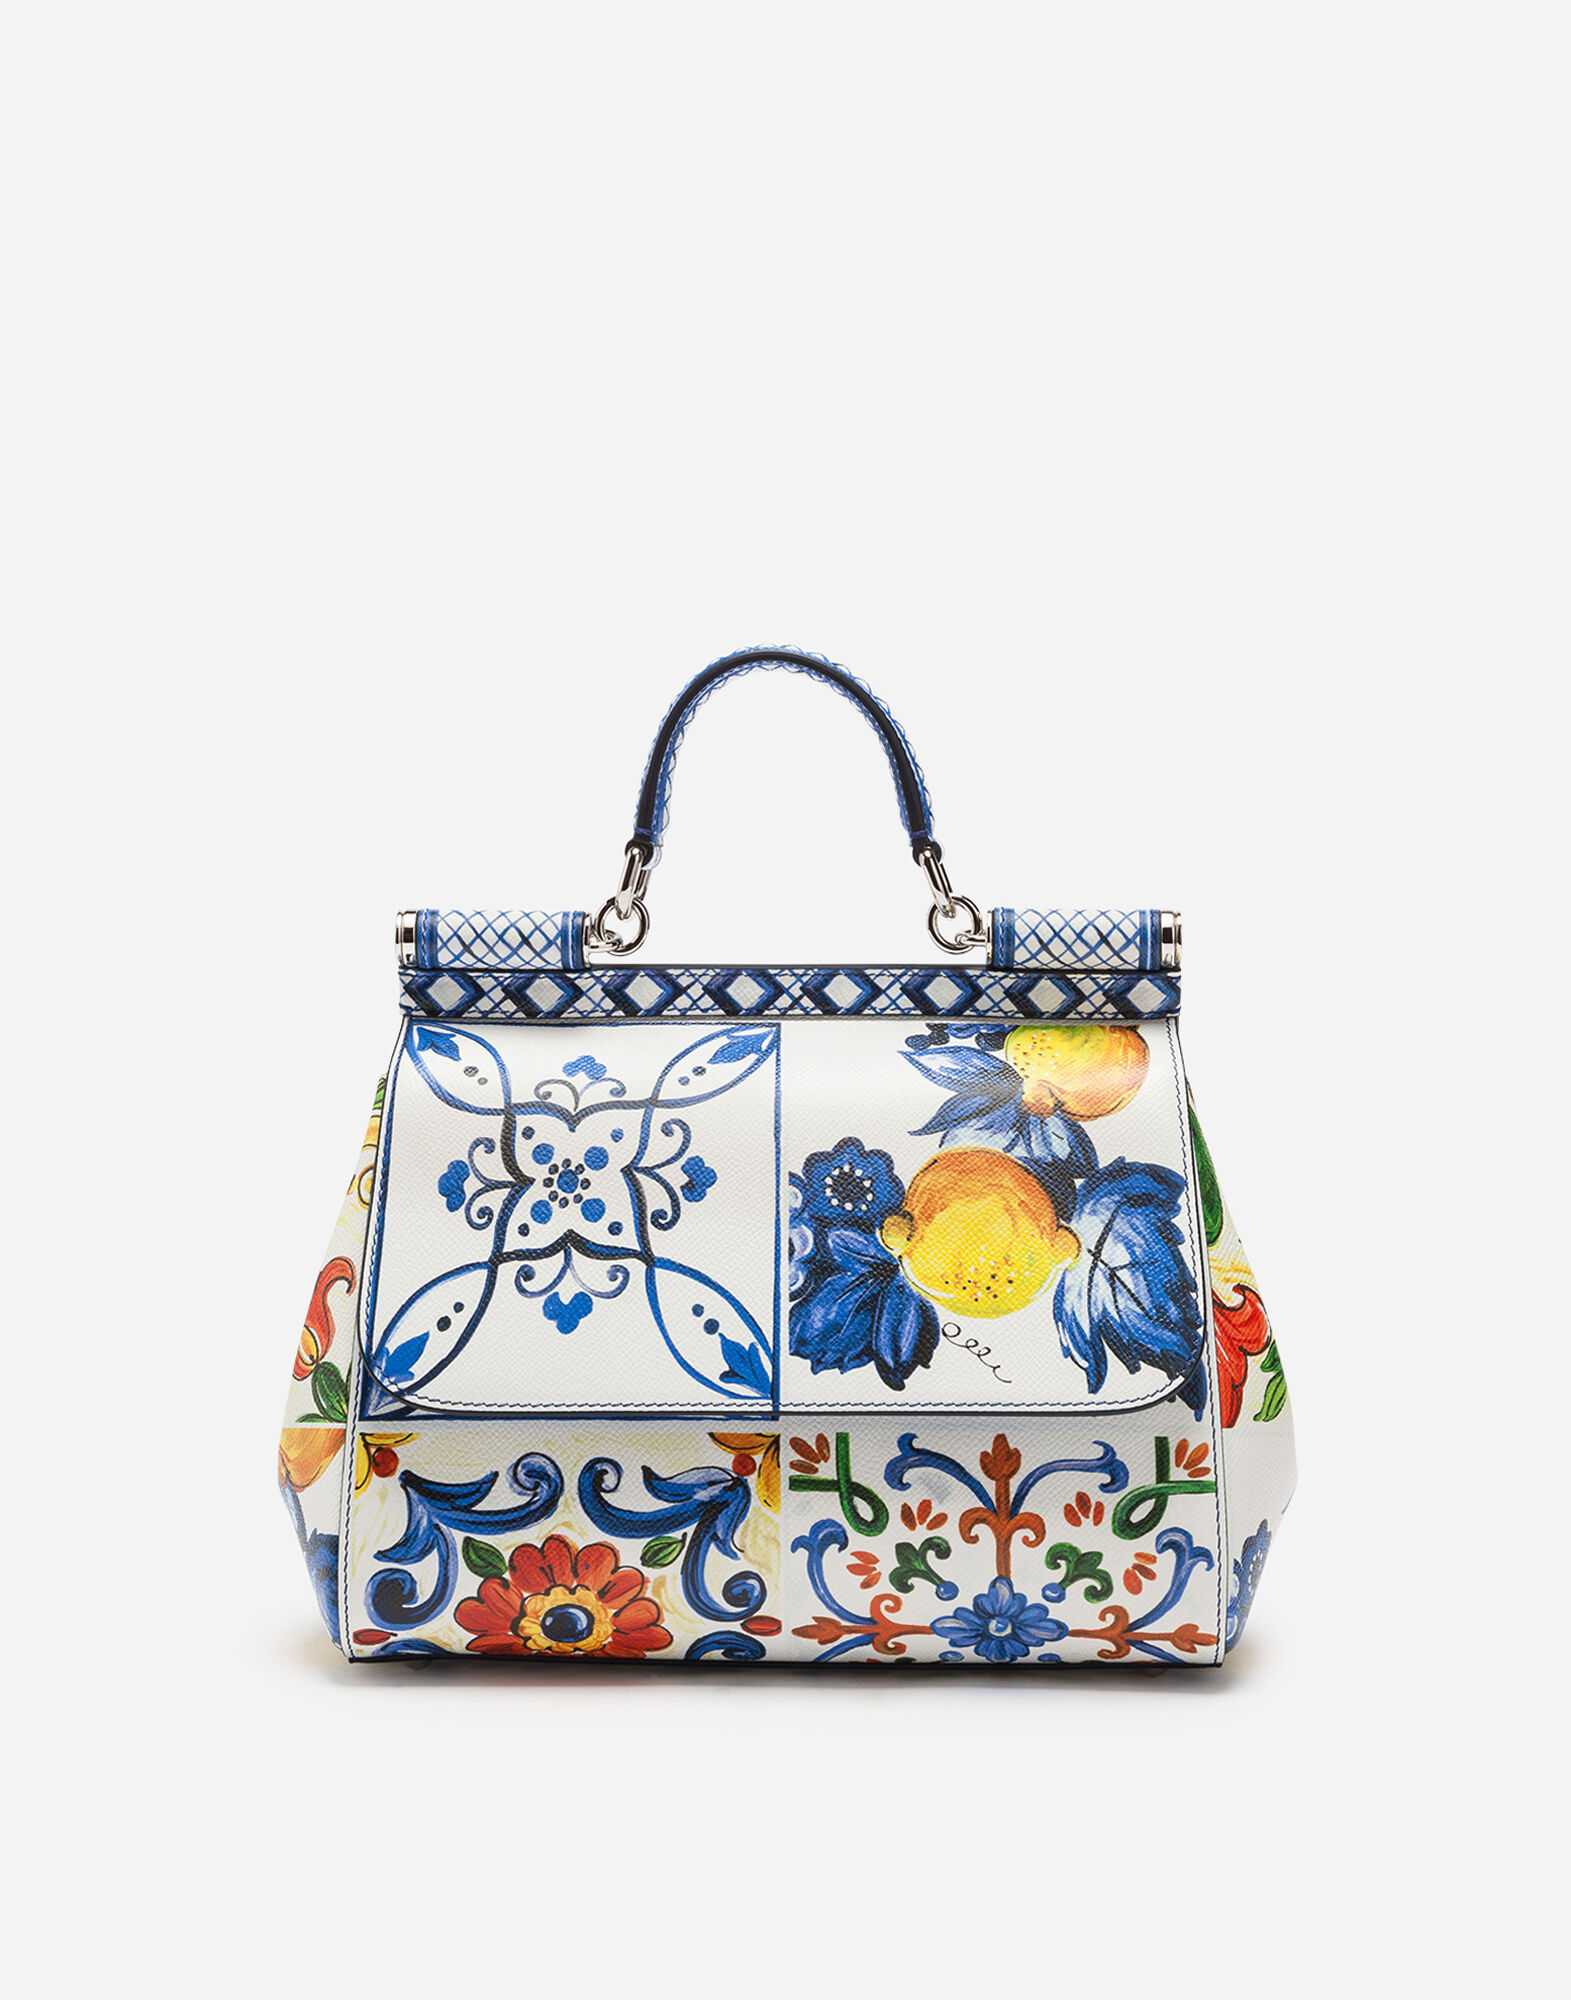 Medium Sicily Bag In Printed Dauphine Calfskin in Female